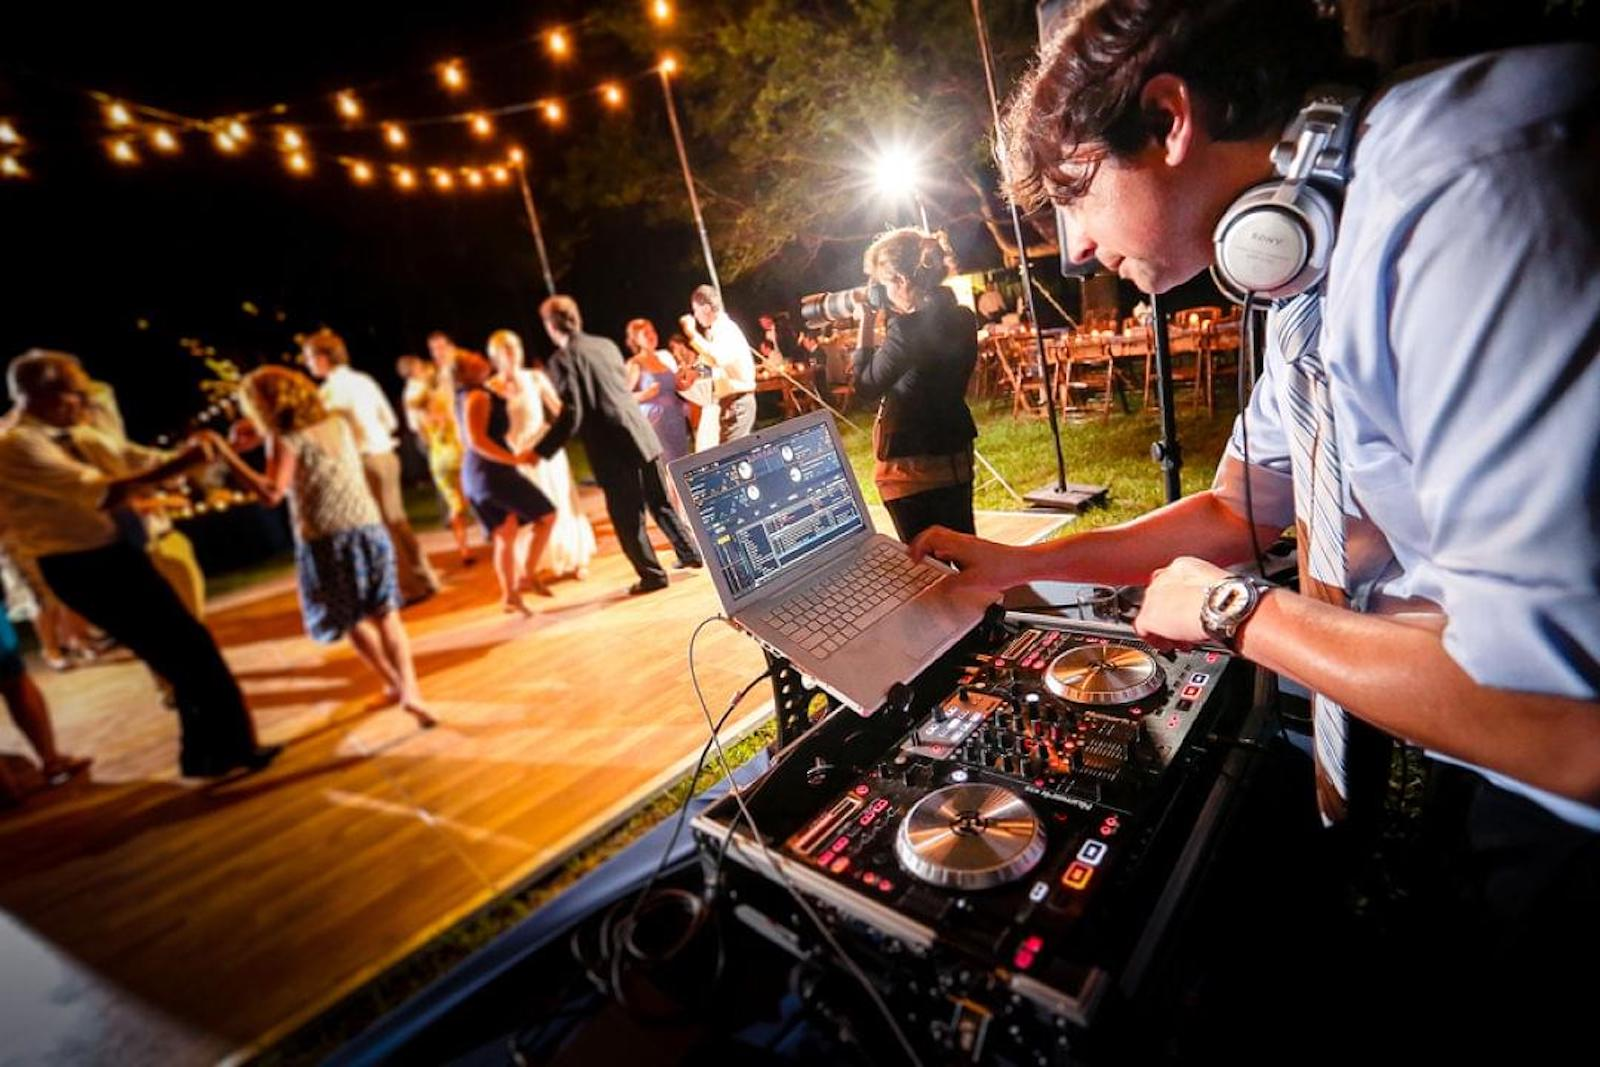 Wedding DJ playing music at an outdoor evening wedding reception